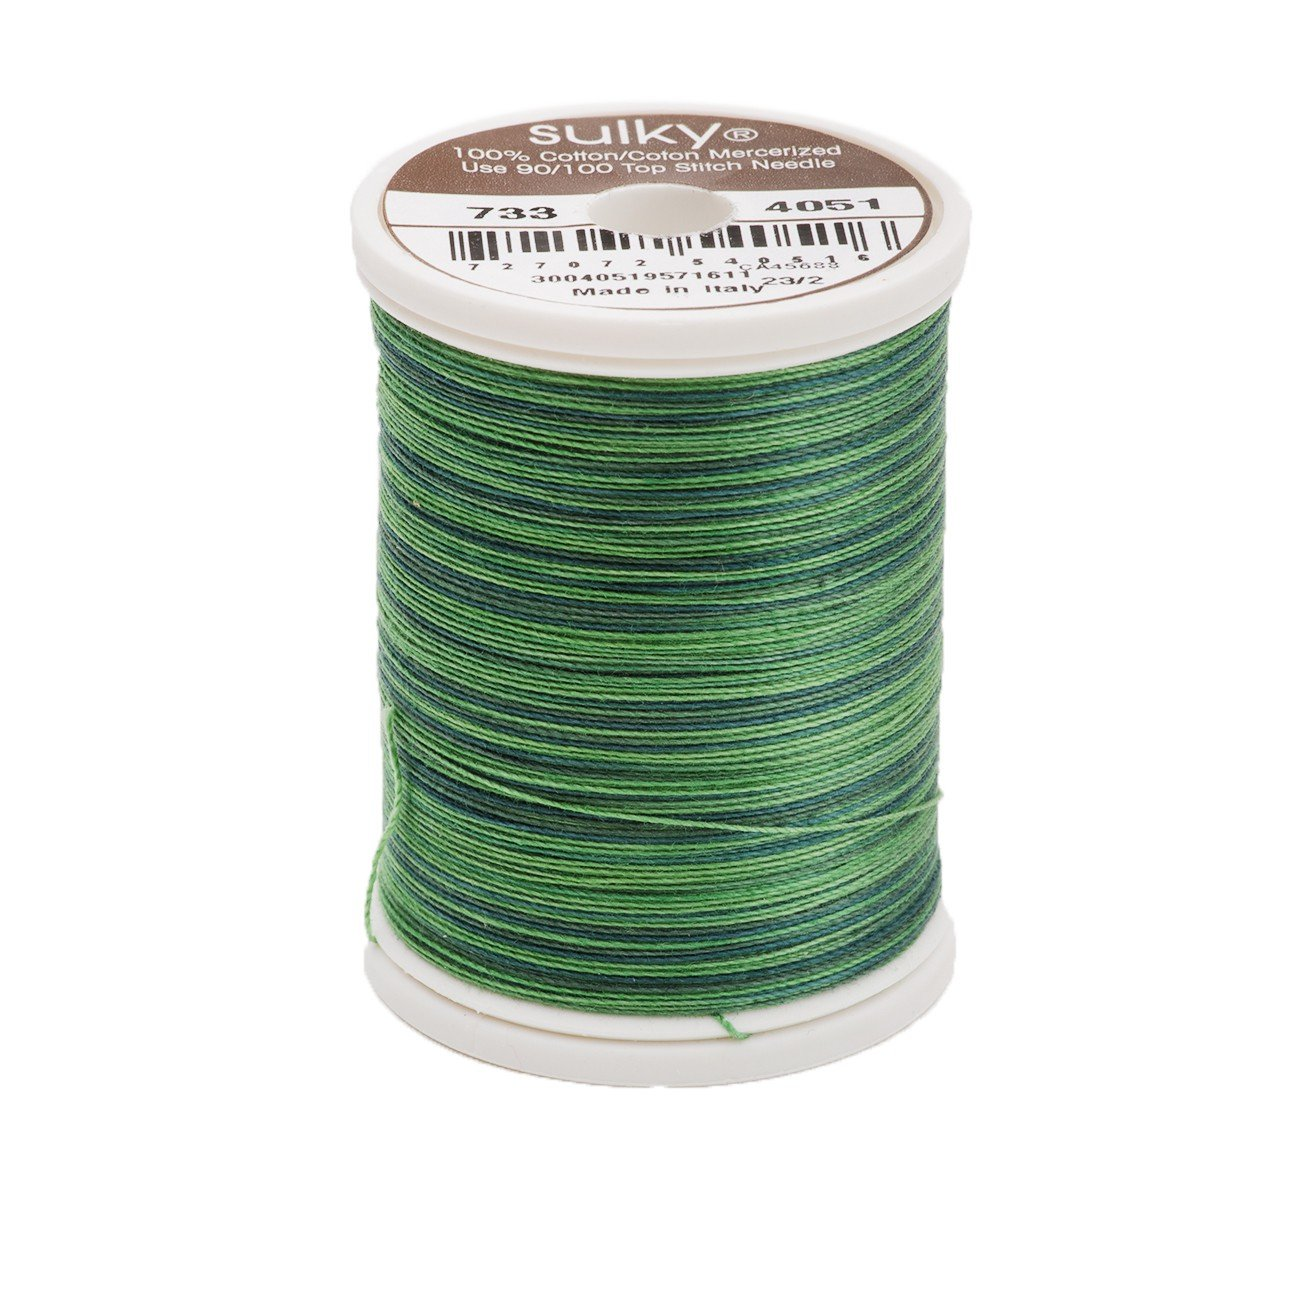 Sulky Blendables Thread for Sewing, 500-Yard, Basic Brights Notions - In Network 733-4126